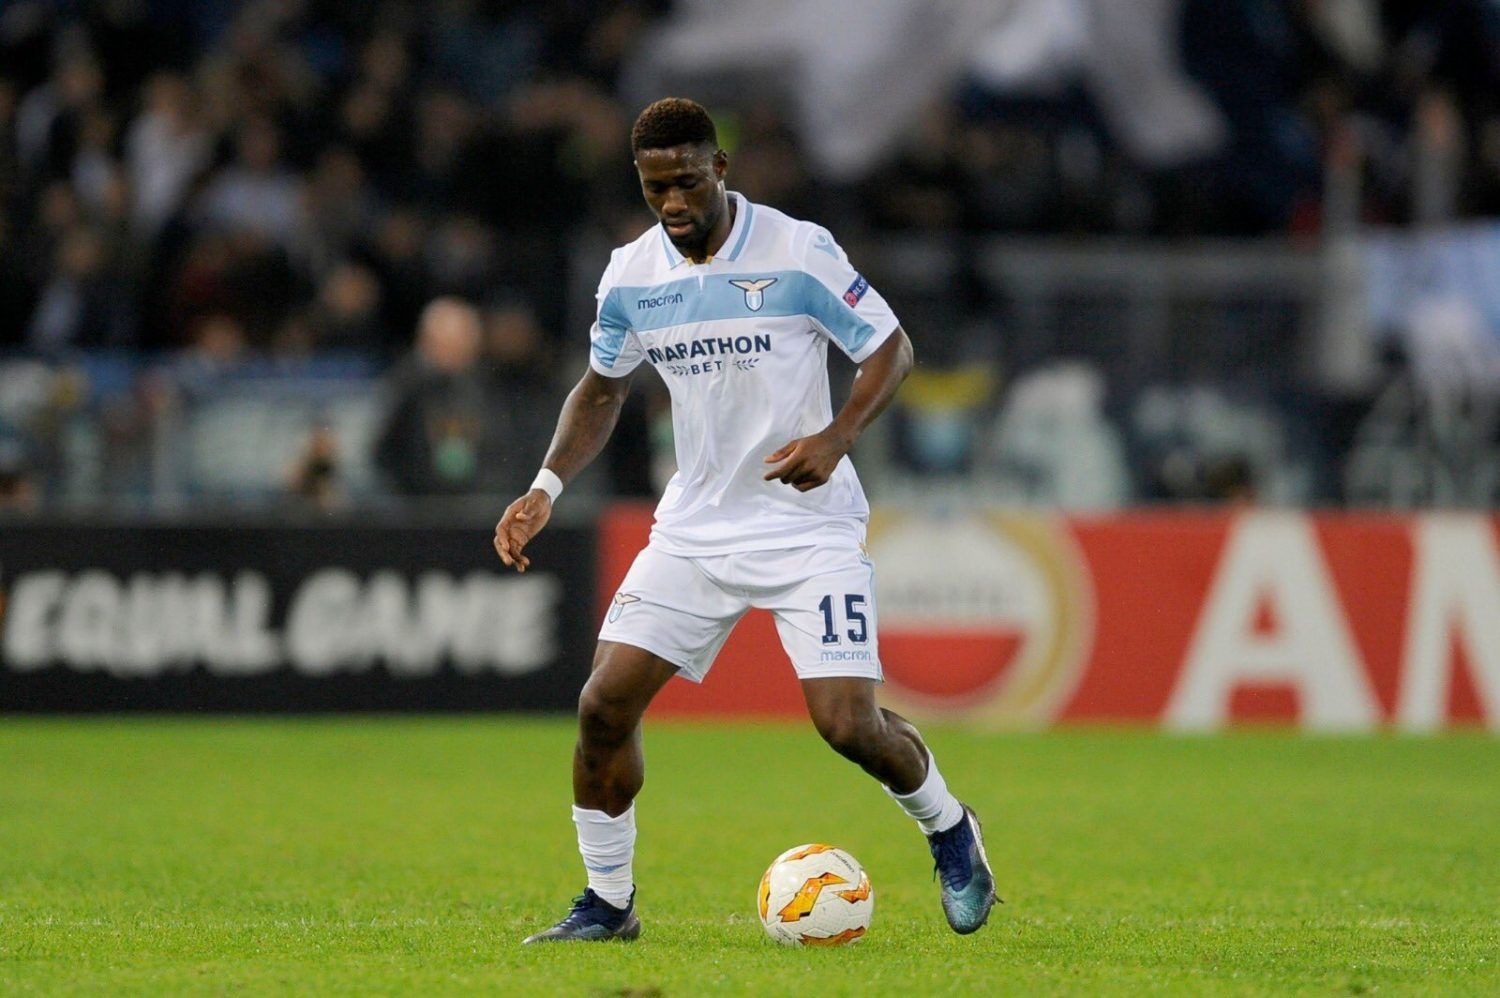 Bastos, Source- Official S.S.Lazio